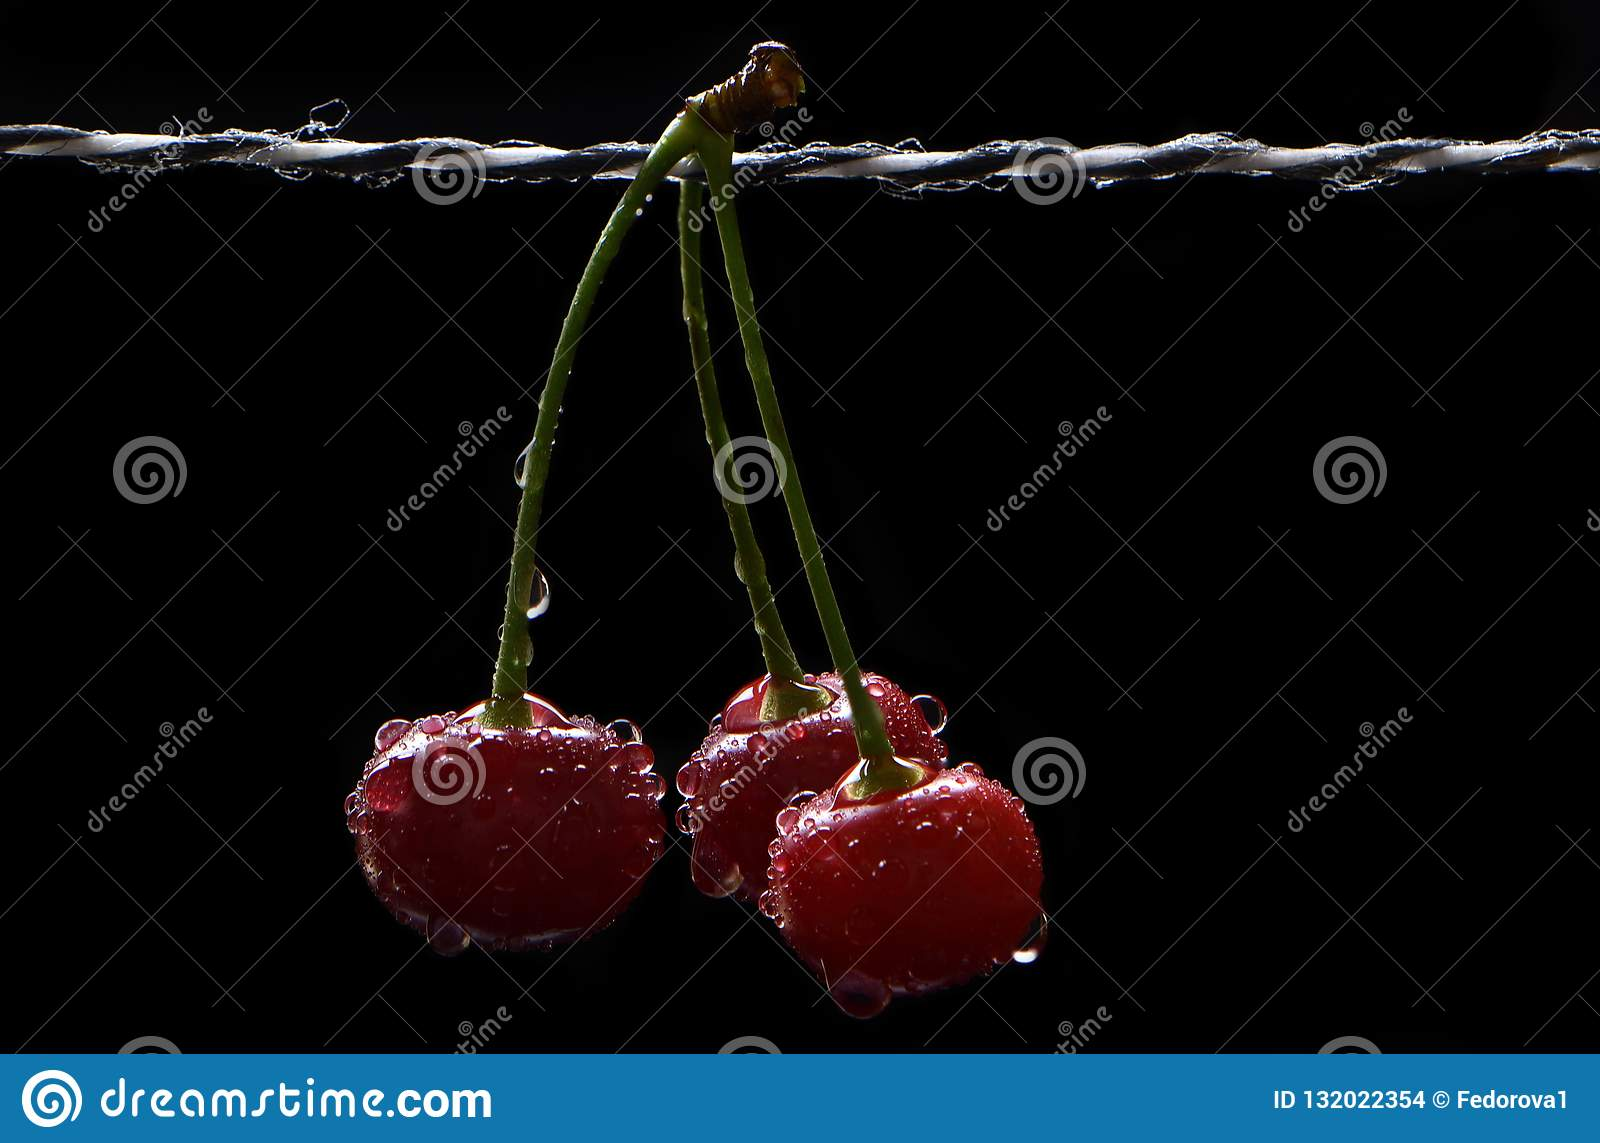 Bunch of ripe cherry in drops